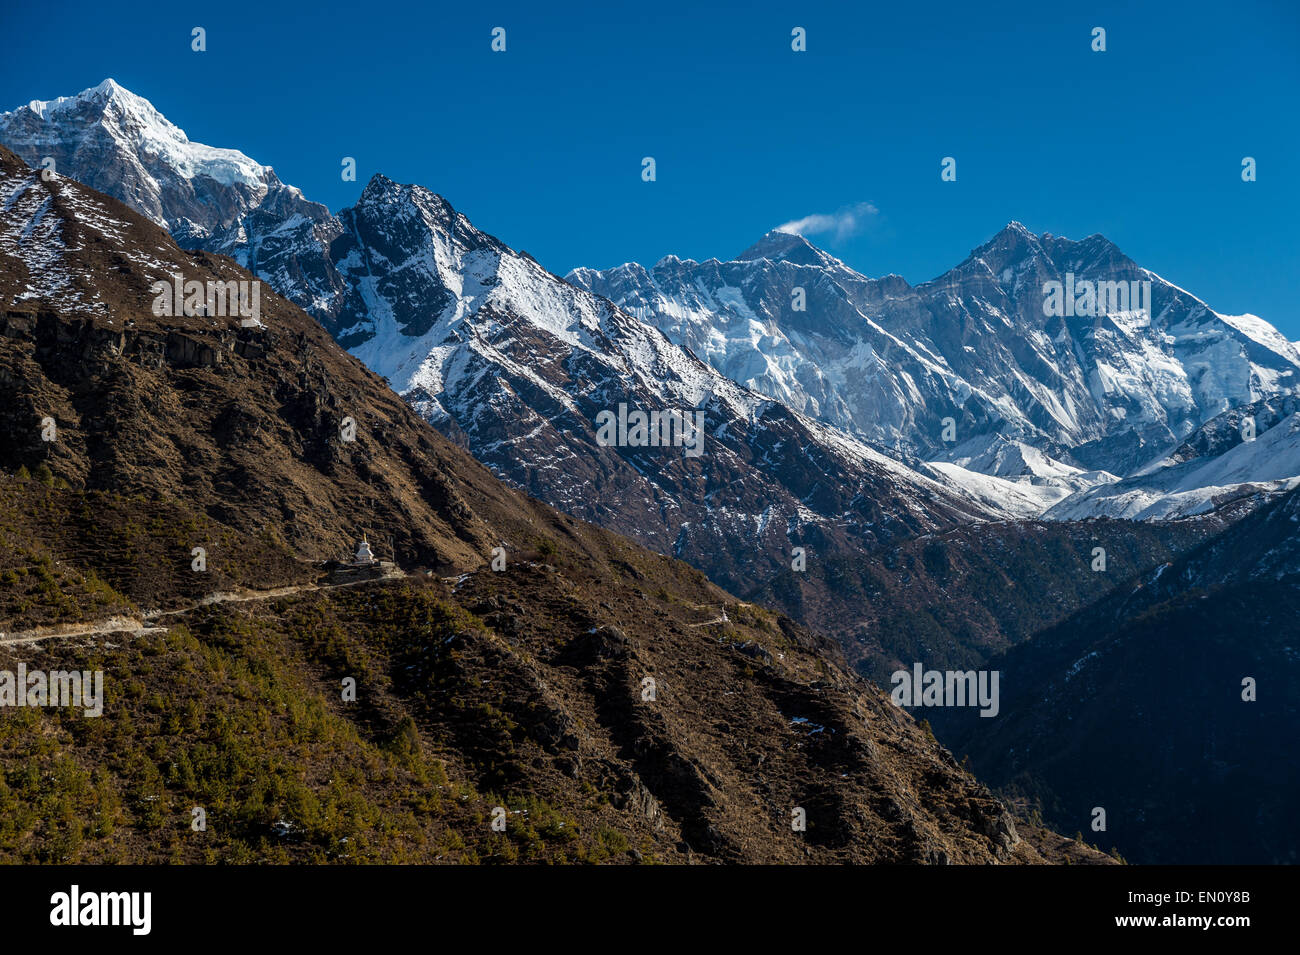 View of Everest, Lhotse and Nuptse peaks in the Everest Region - Stock Image